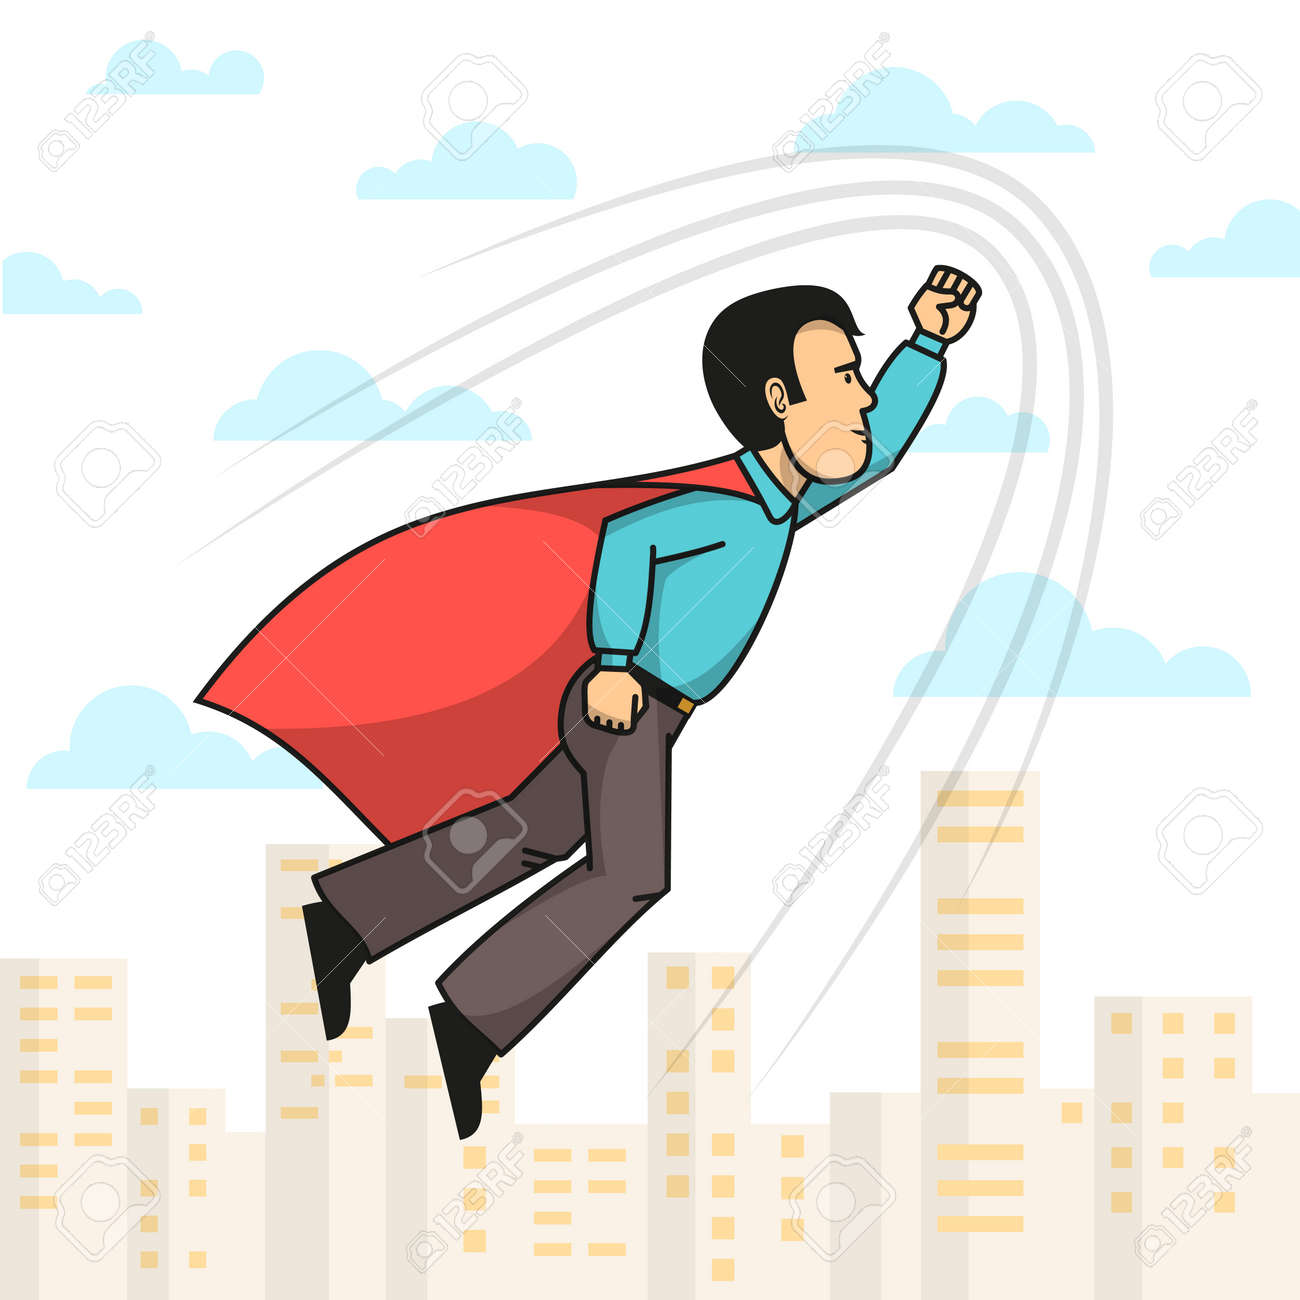 Side view of superhero man wearing red cloak with hand up flying over city. Vector illustration. Stock Vector - 85127806